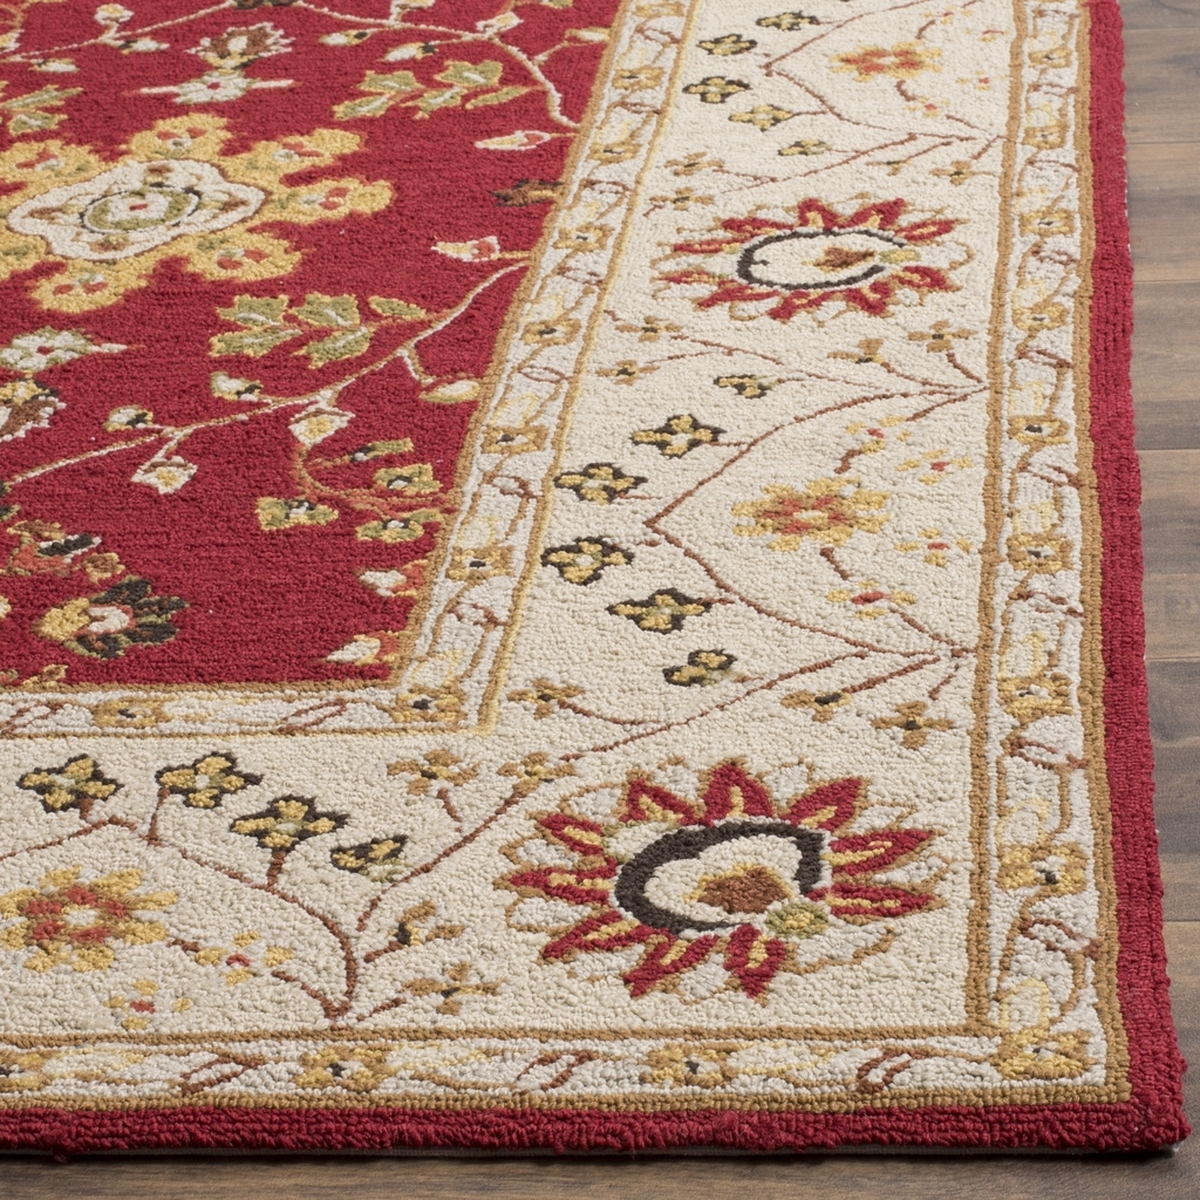 Rug Ezc751c Easy Care Area Rugs By Safavieh